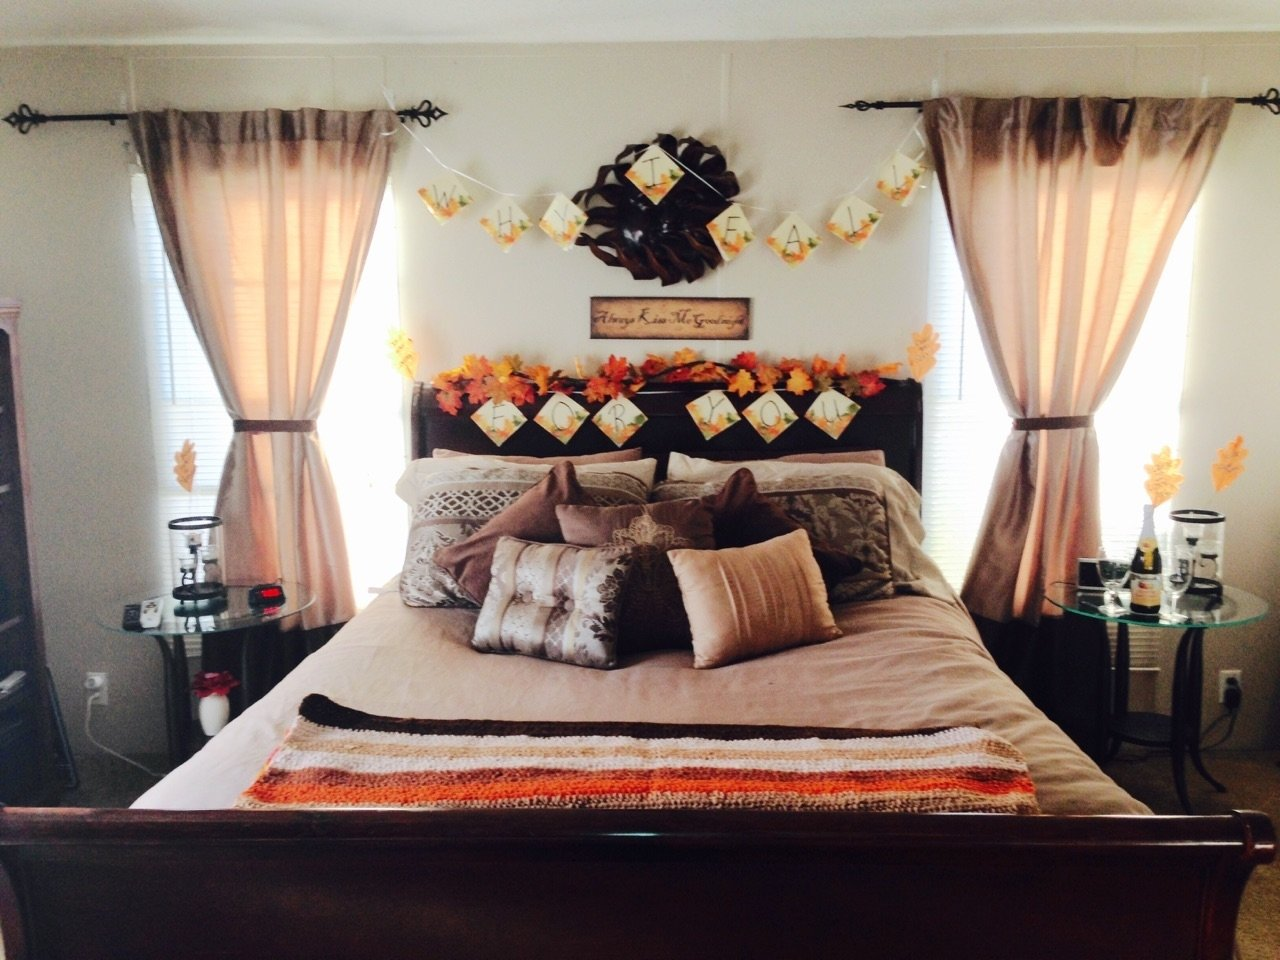 Welcome Home Surprise Ideas For Boyfriend Cute And Romantic Ideas